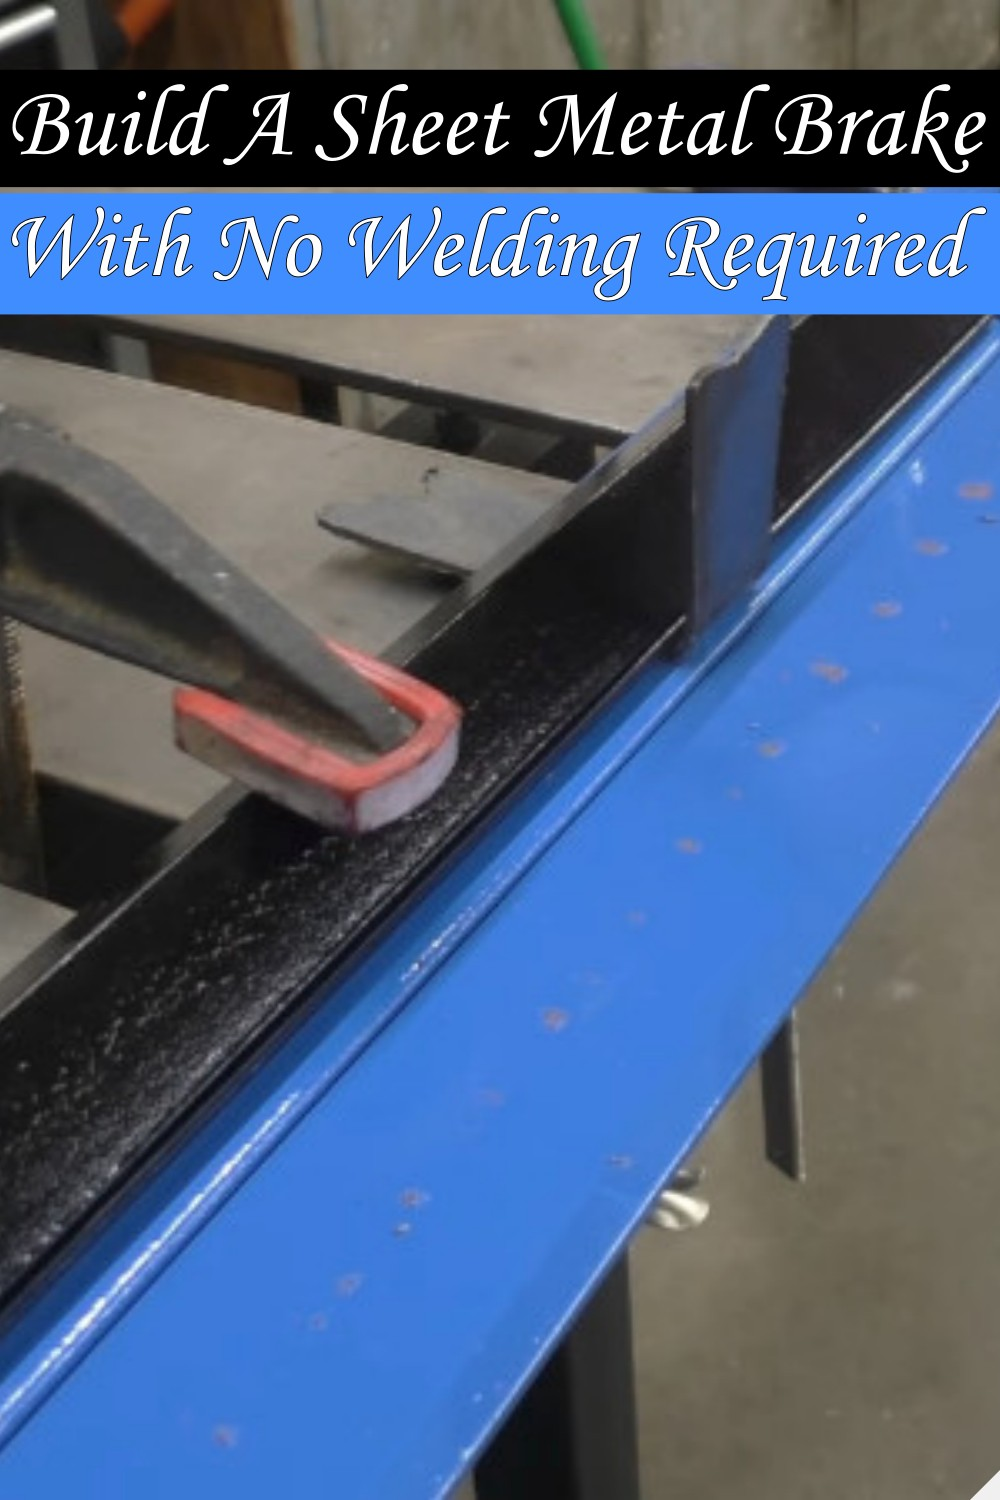 Build A Sheet Metal Brake With No Welding Required